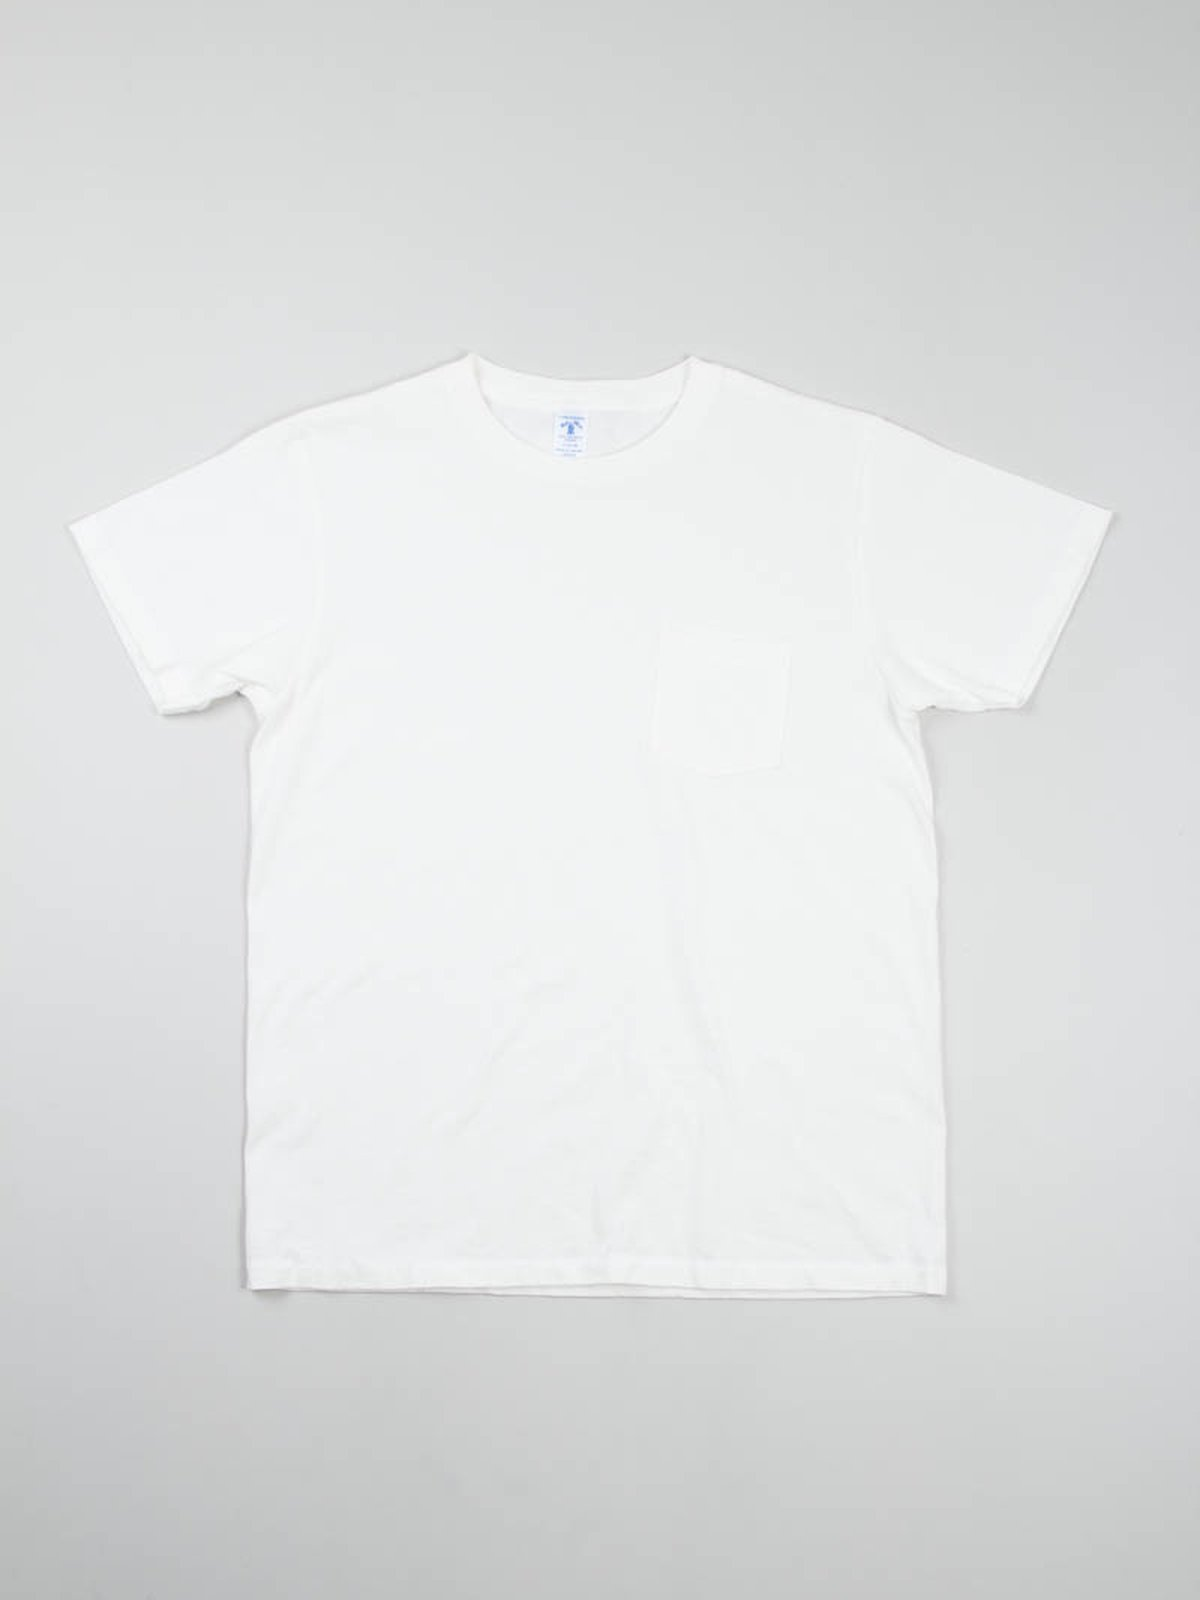 White/Heather Grey 2–Pac Pocket Tees - Image 3